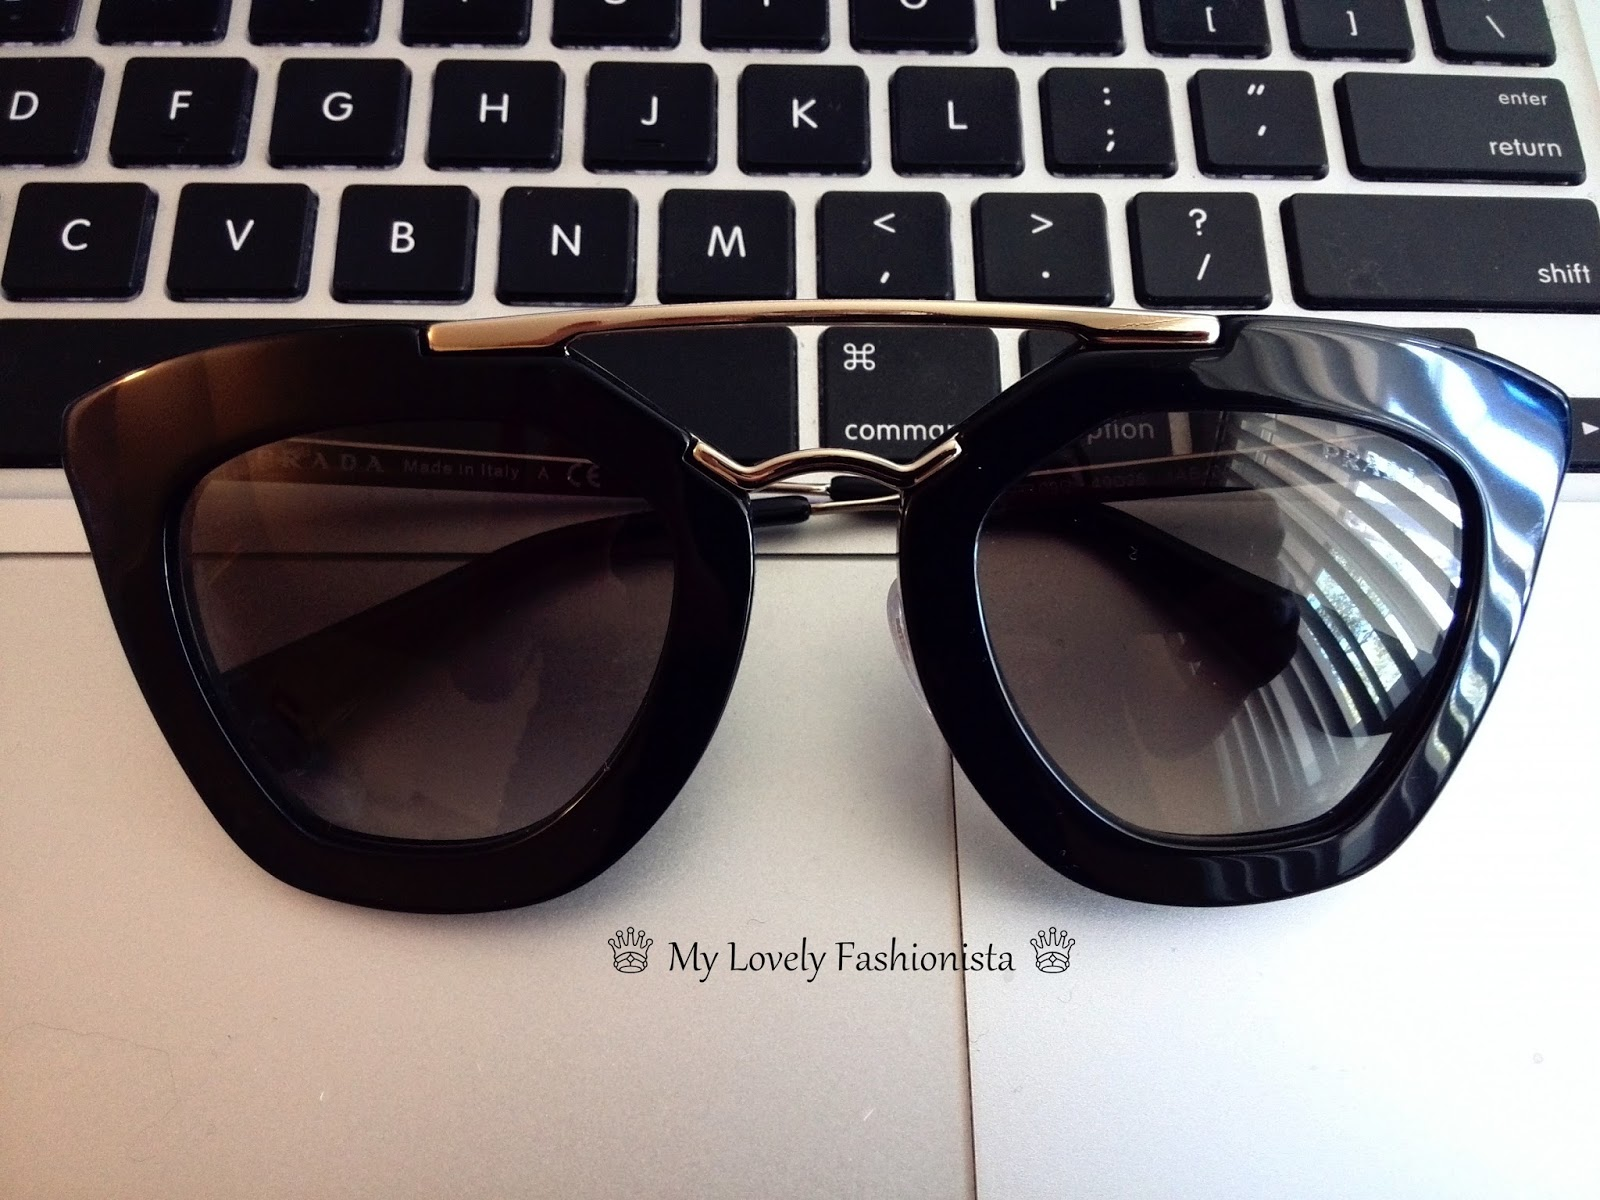 a9d7c668911 Prada Cat Eye Sunglasses - ♕ My Lovely Fashionista ♕